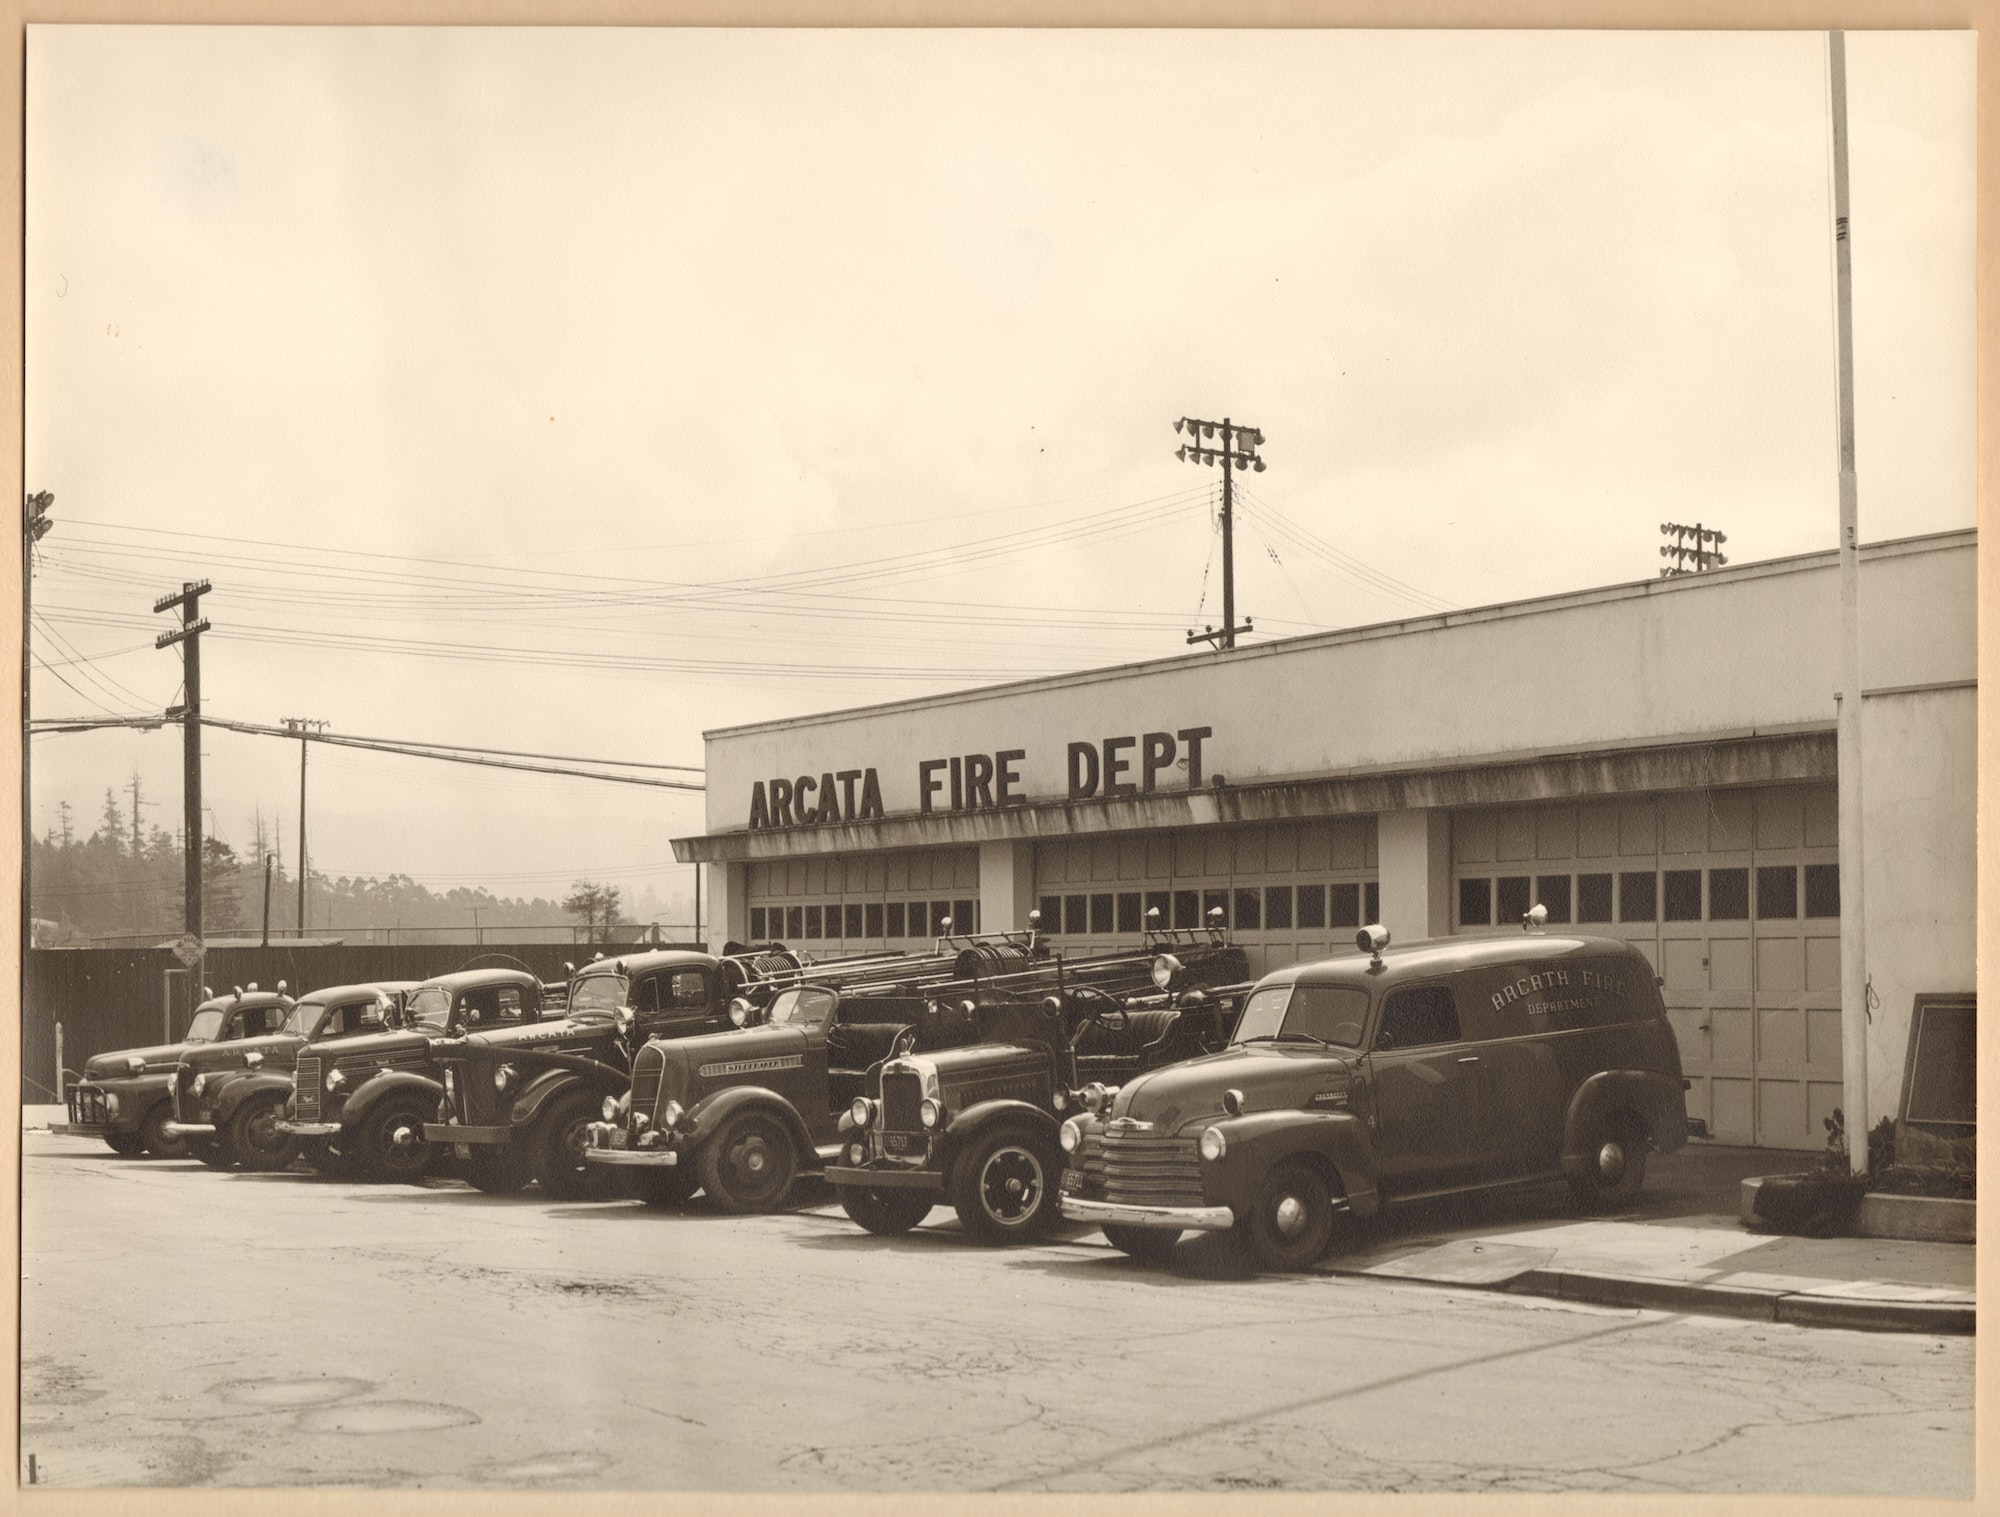 Photo of apparatus from the 1950's